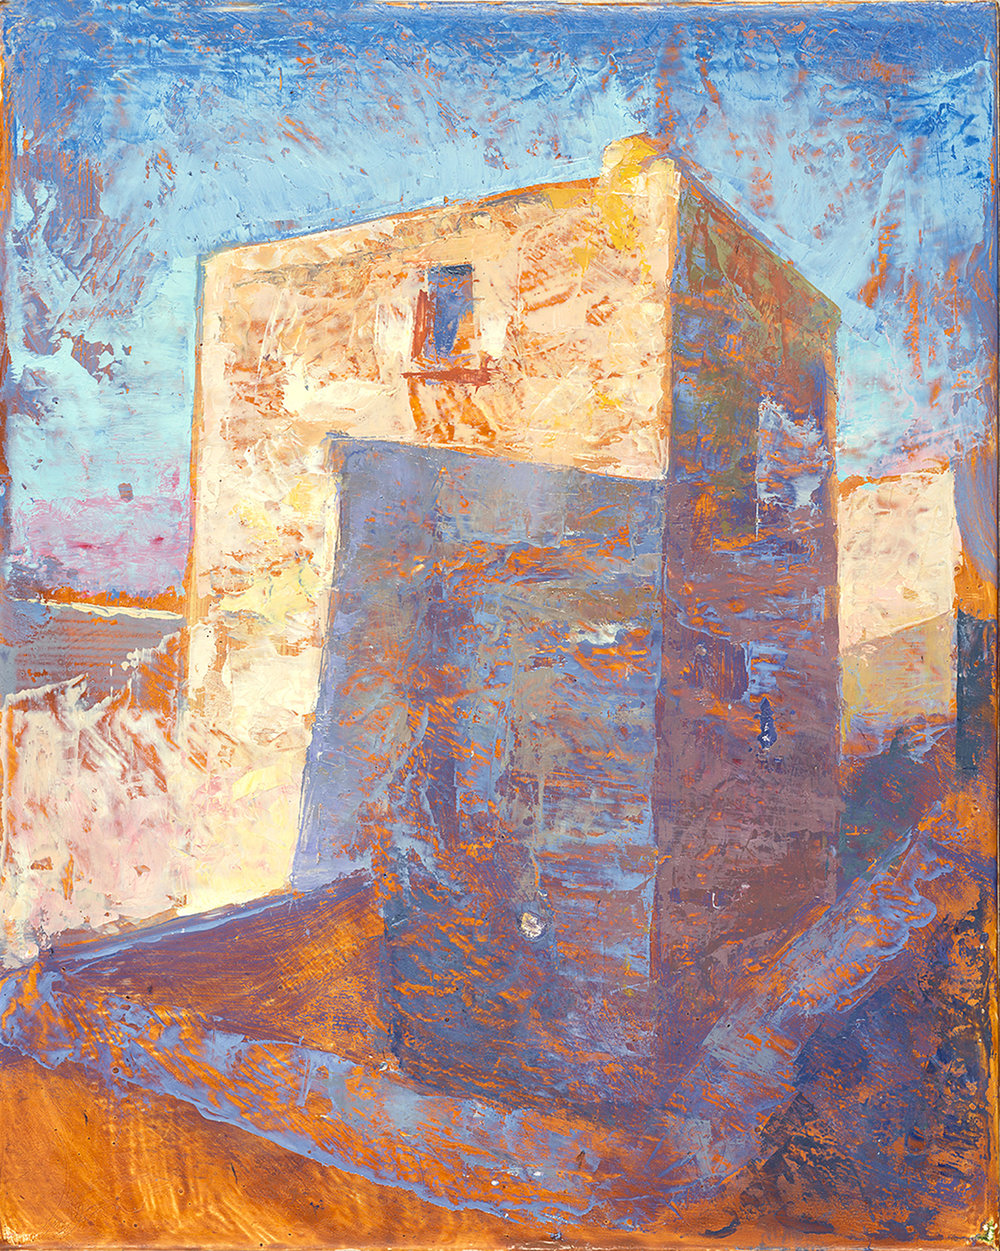 'Pyrgos 1: Tower house' oil on gesso panel 25.5 x 22.2 cm